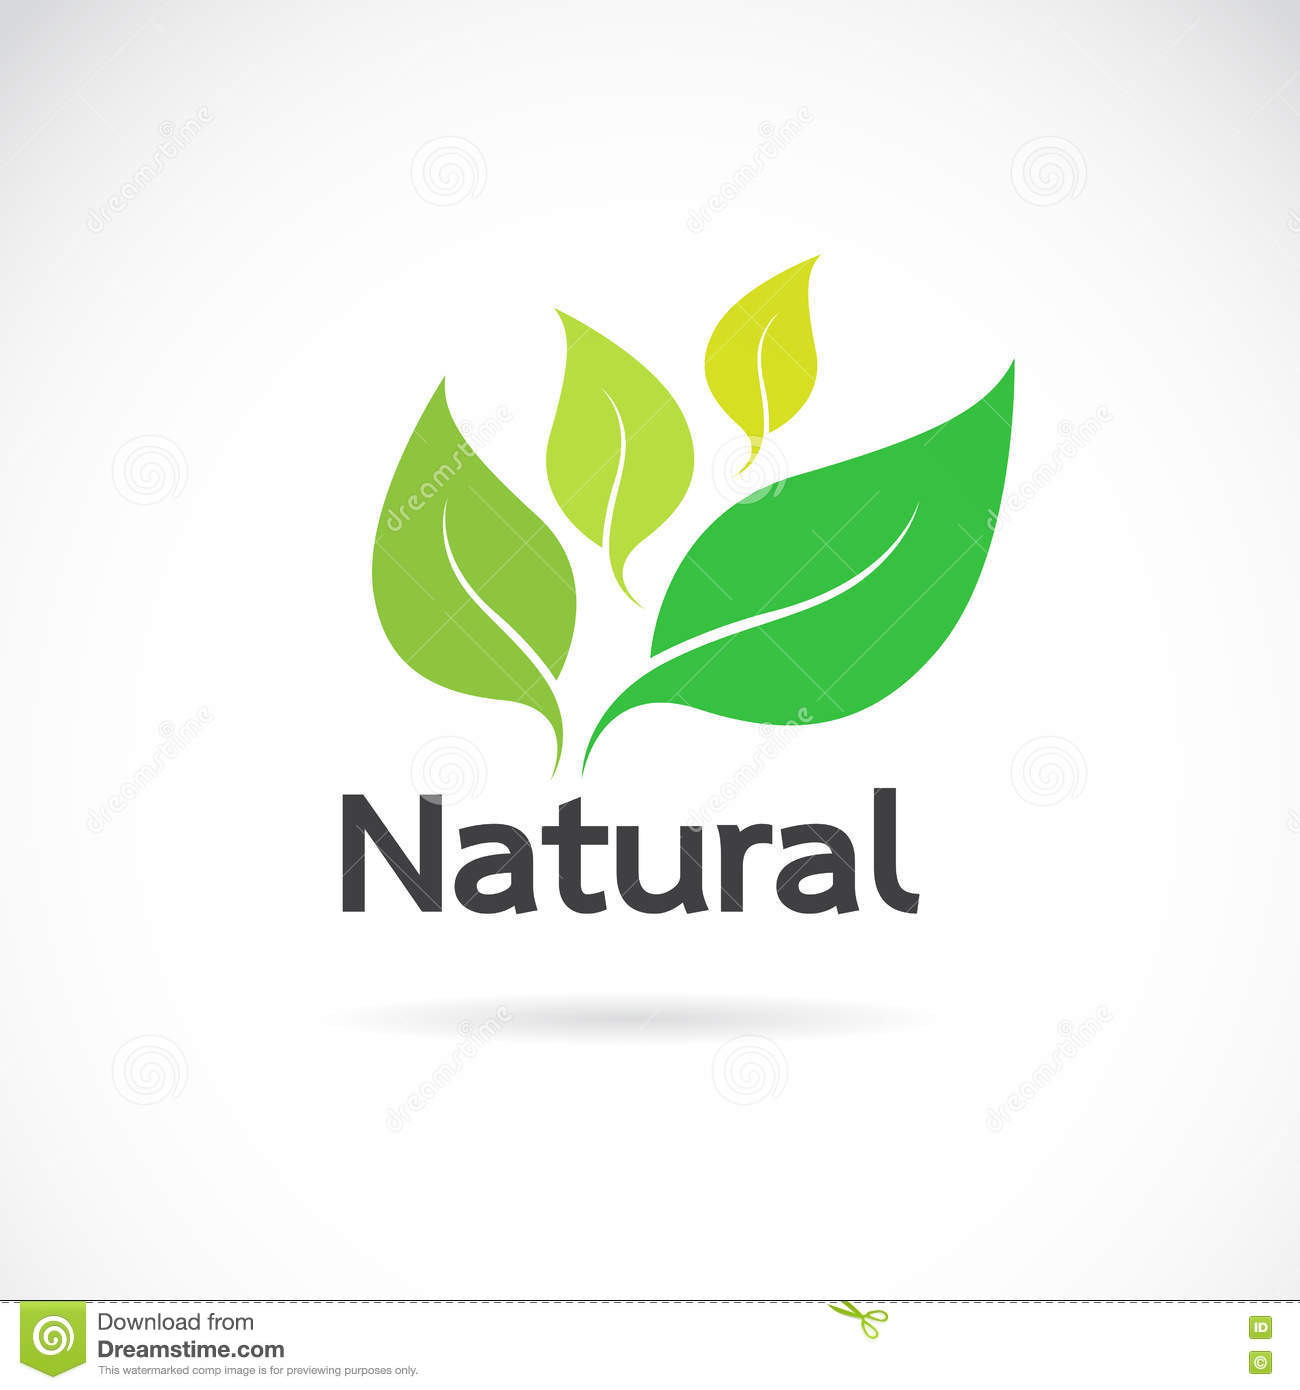 Natural Logo Vectors Photos and PSD files  Free Download